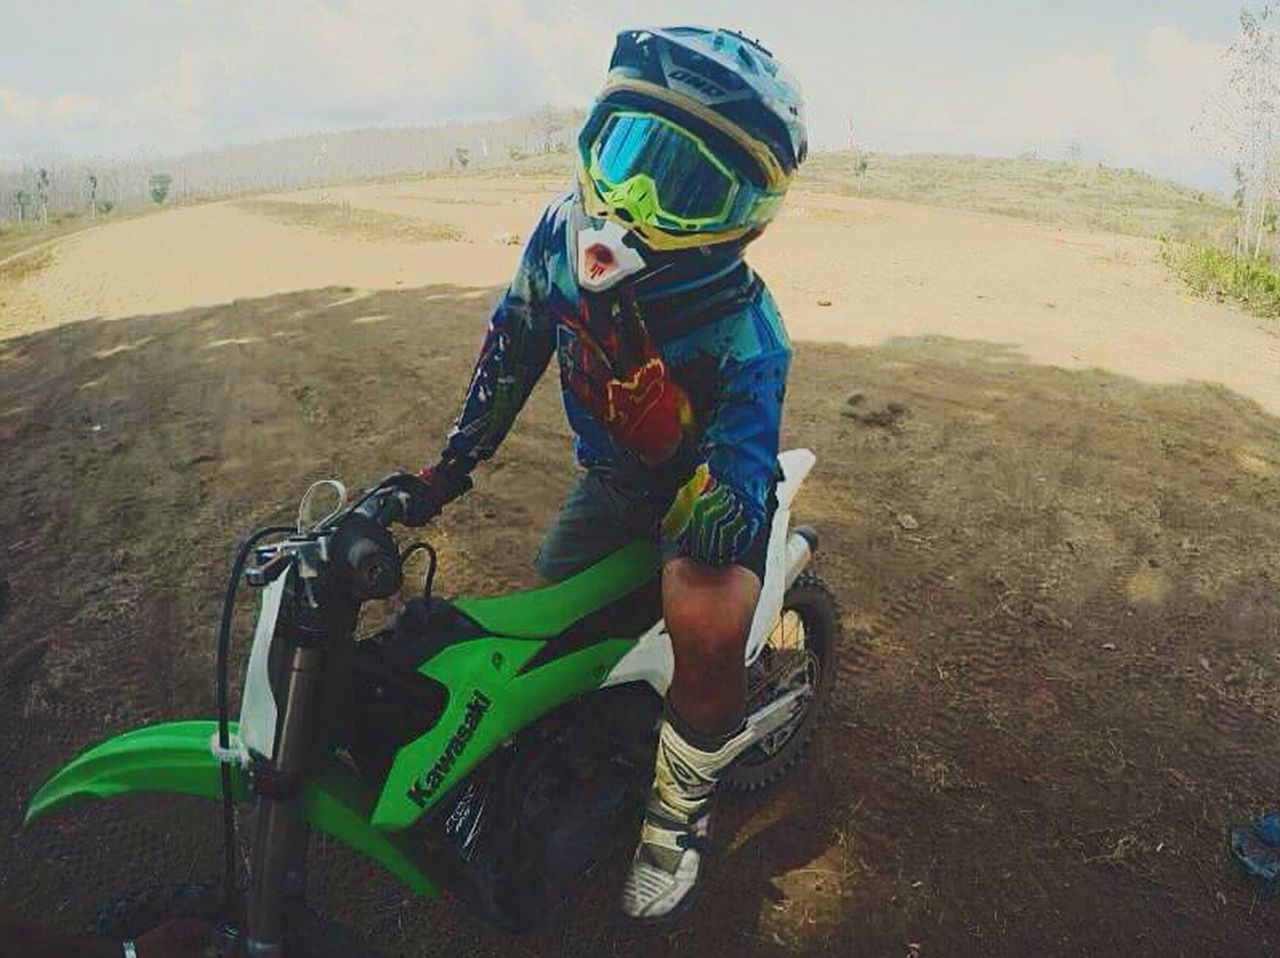 Are you ready to race?? Brap brap!! Sports Helmet Adventure Riding Sport Real People Outdoors Day Sand Motocross